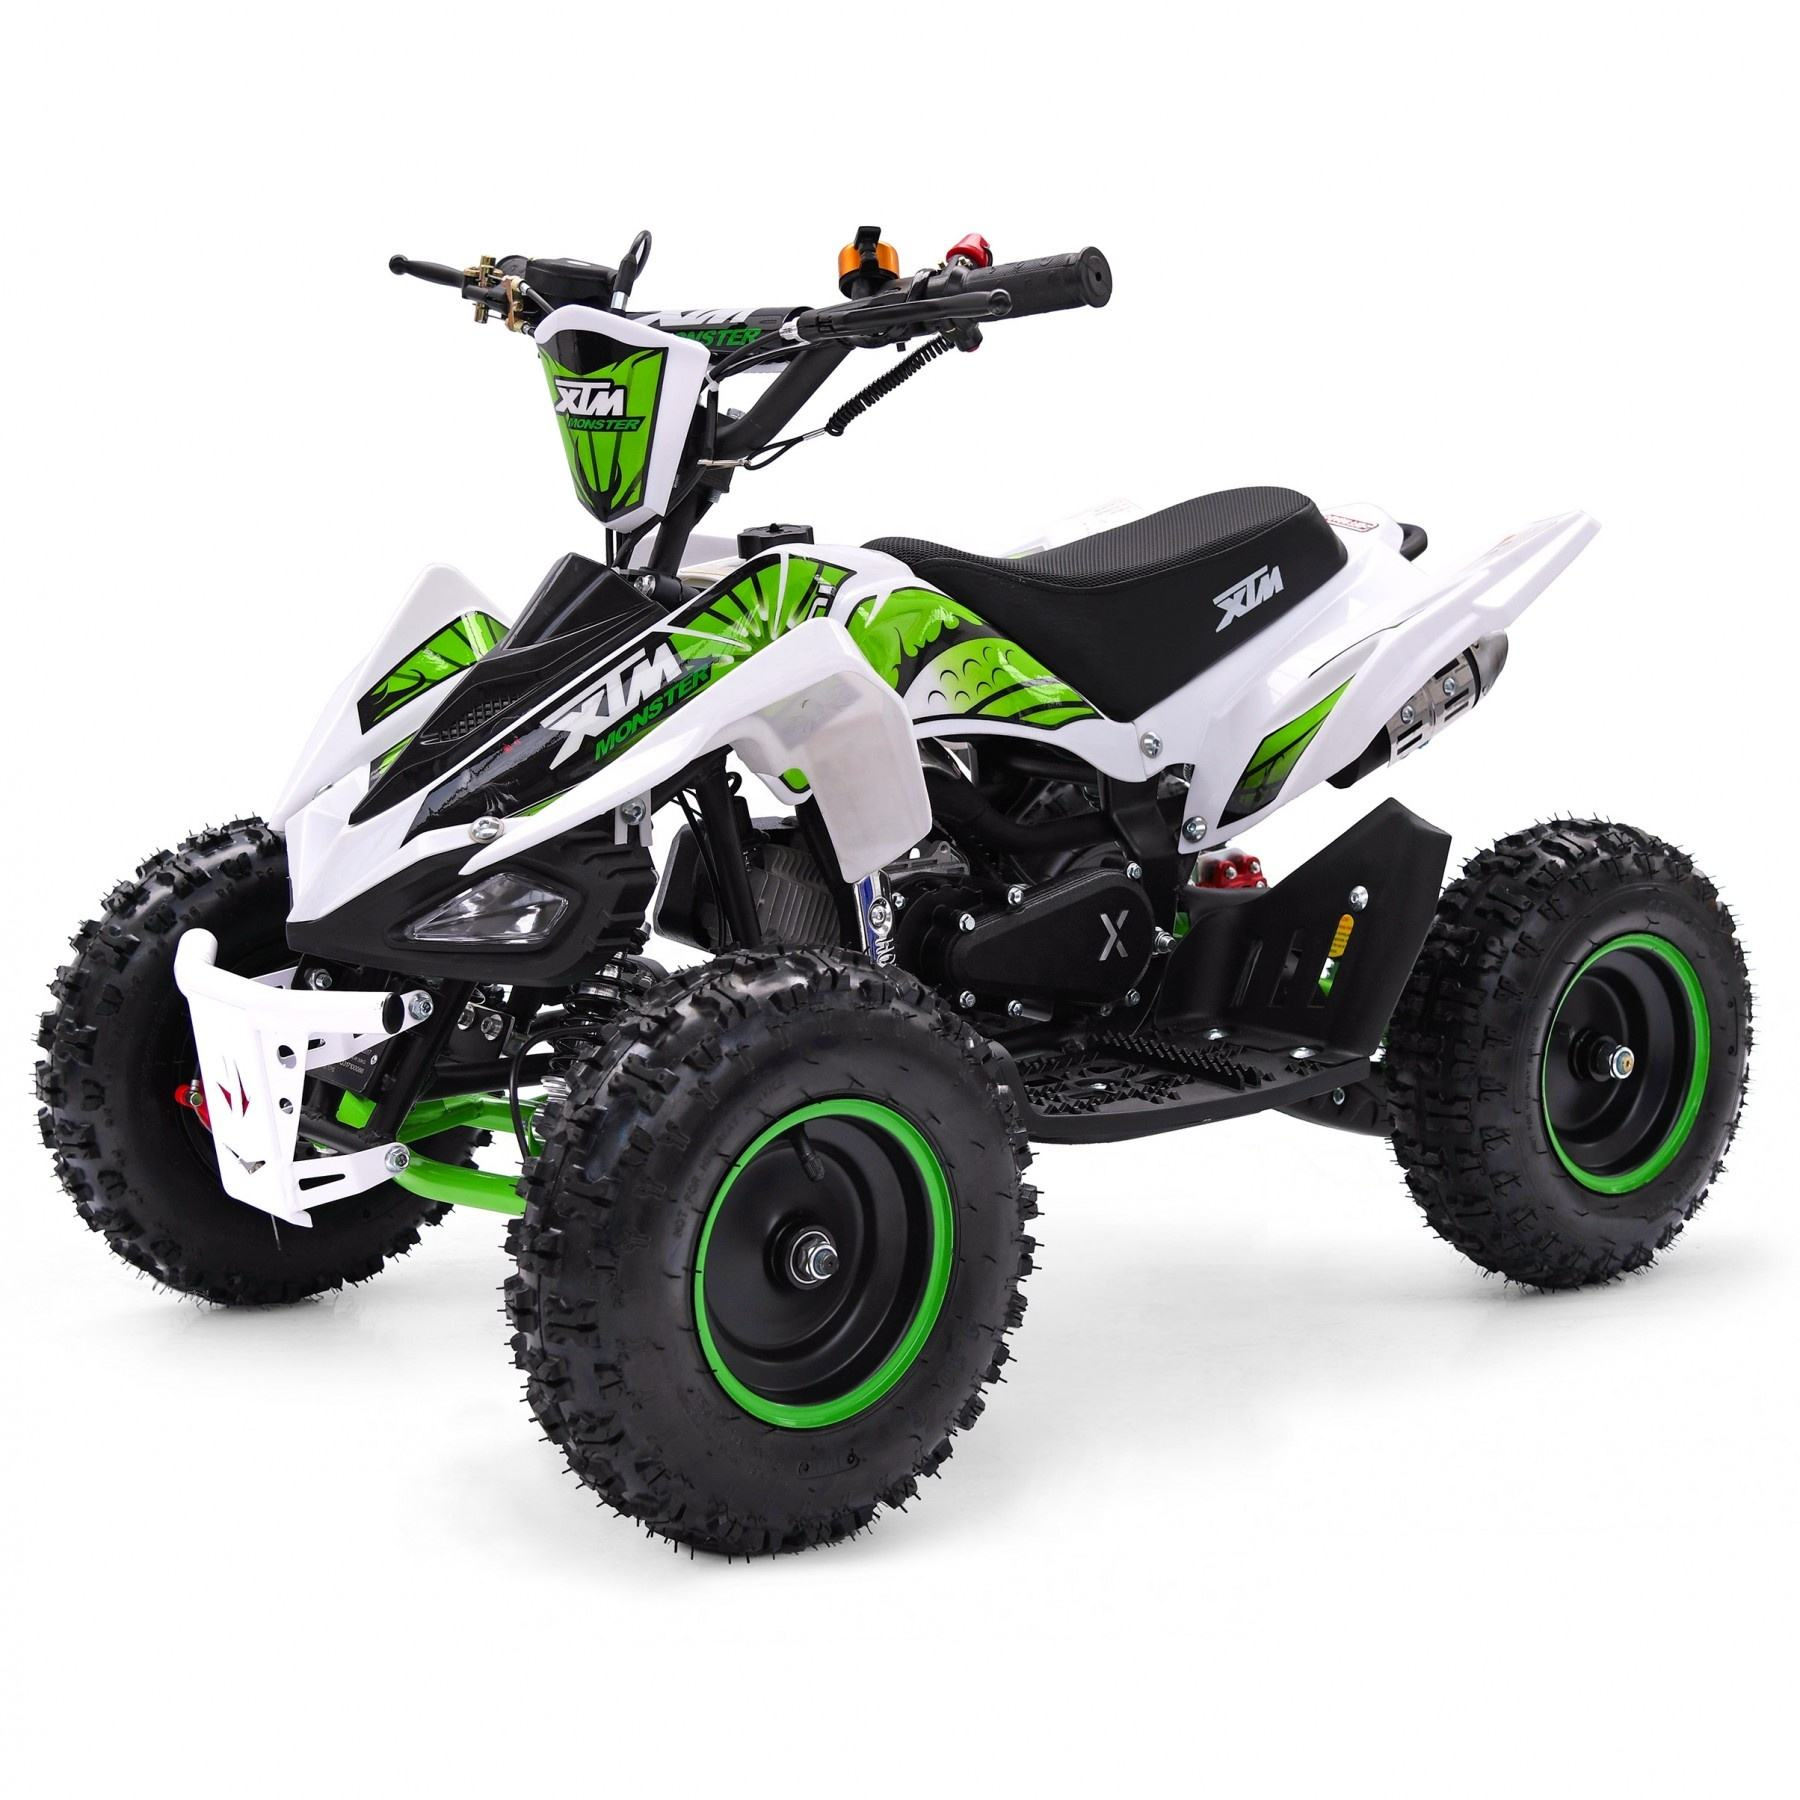 Tao Motor popular cheap chinese atv quad 49cc quad bike 2 stroke four wheeler mini moto 50cc automatic atv